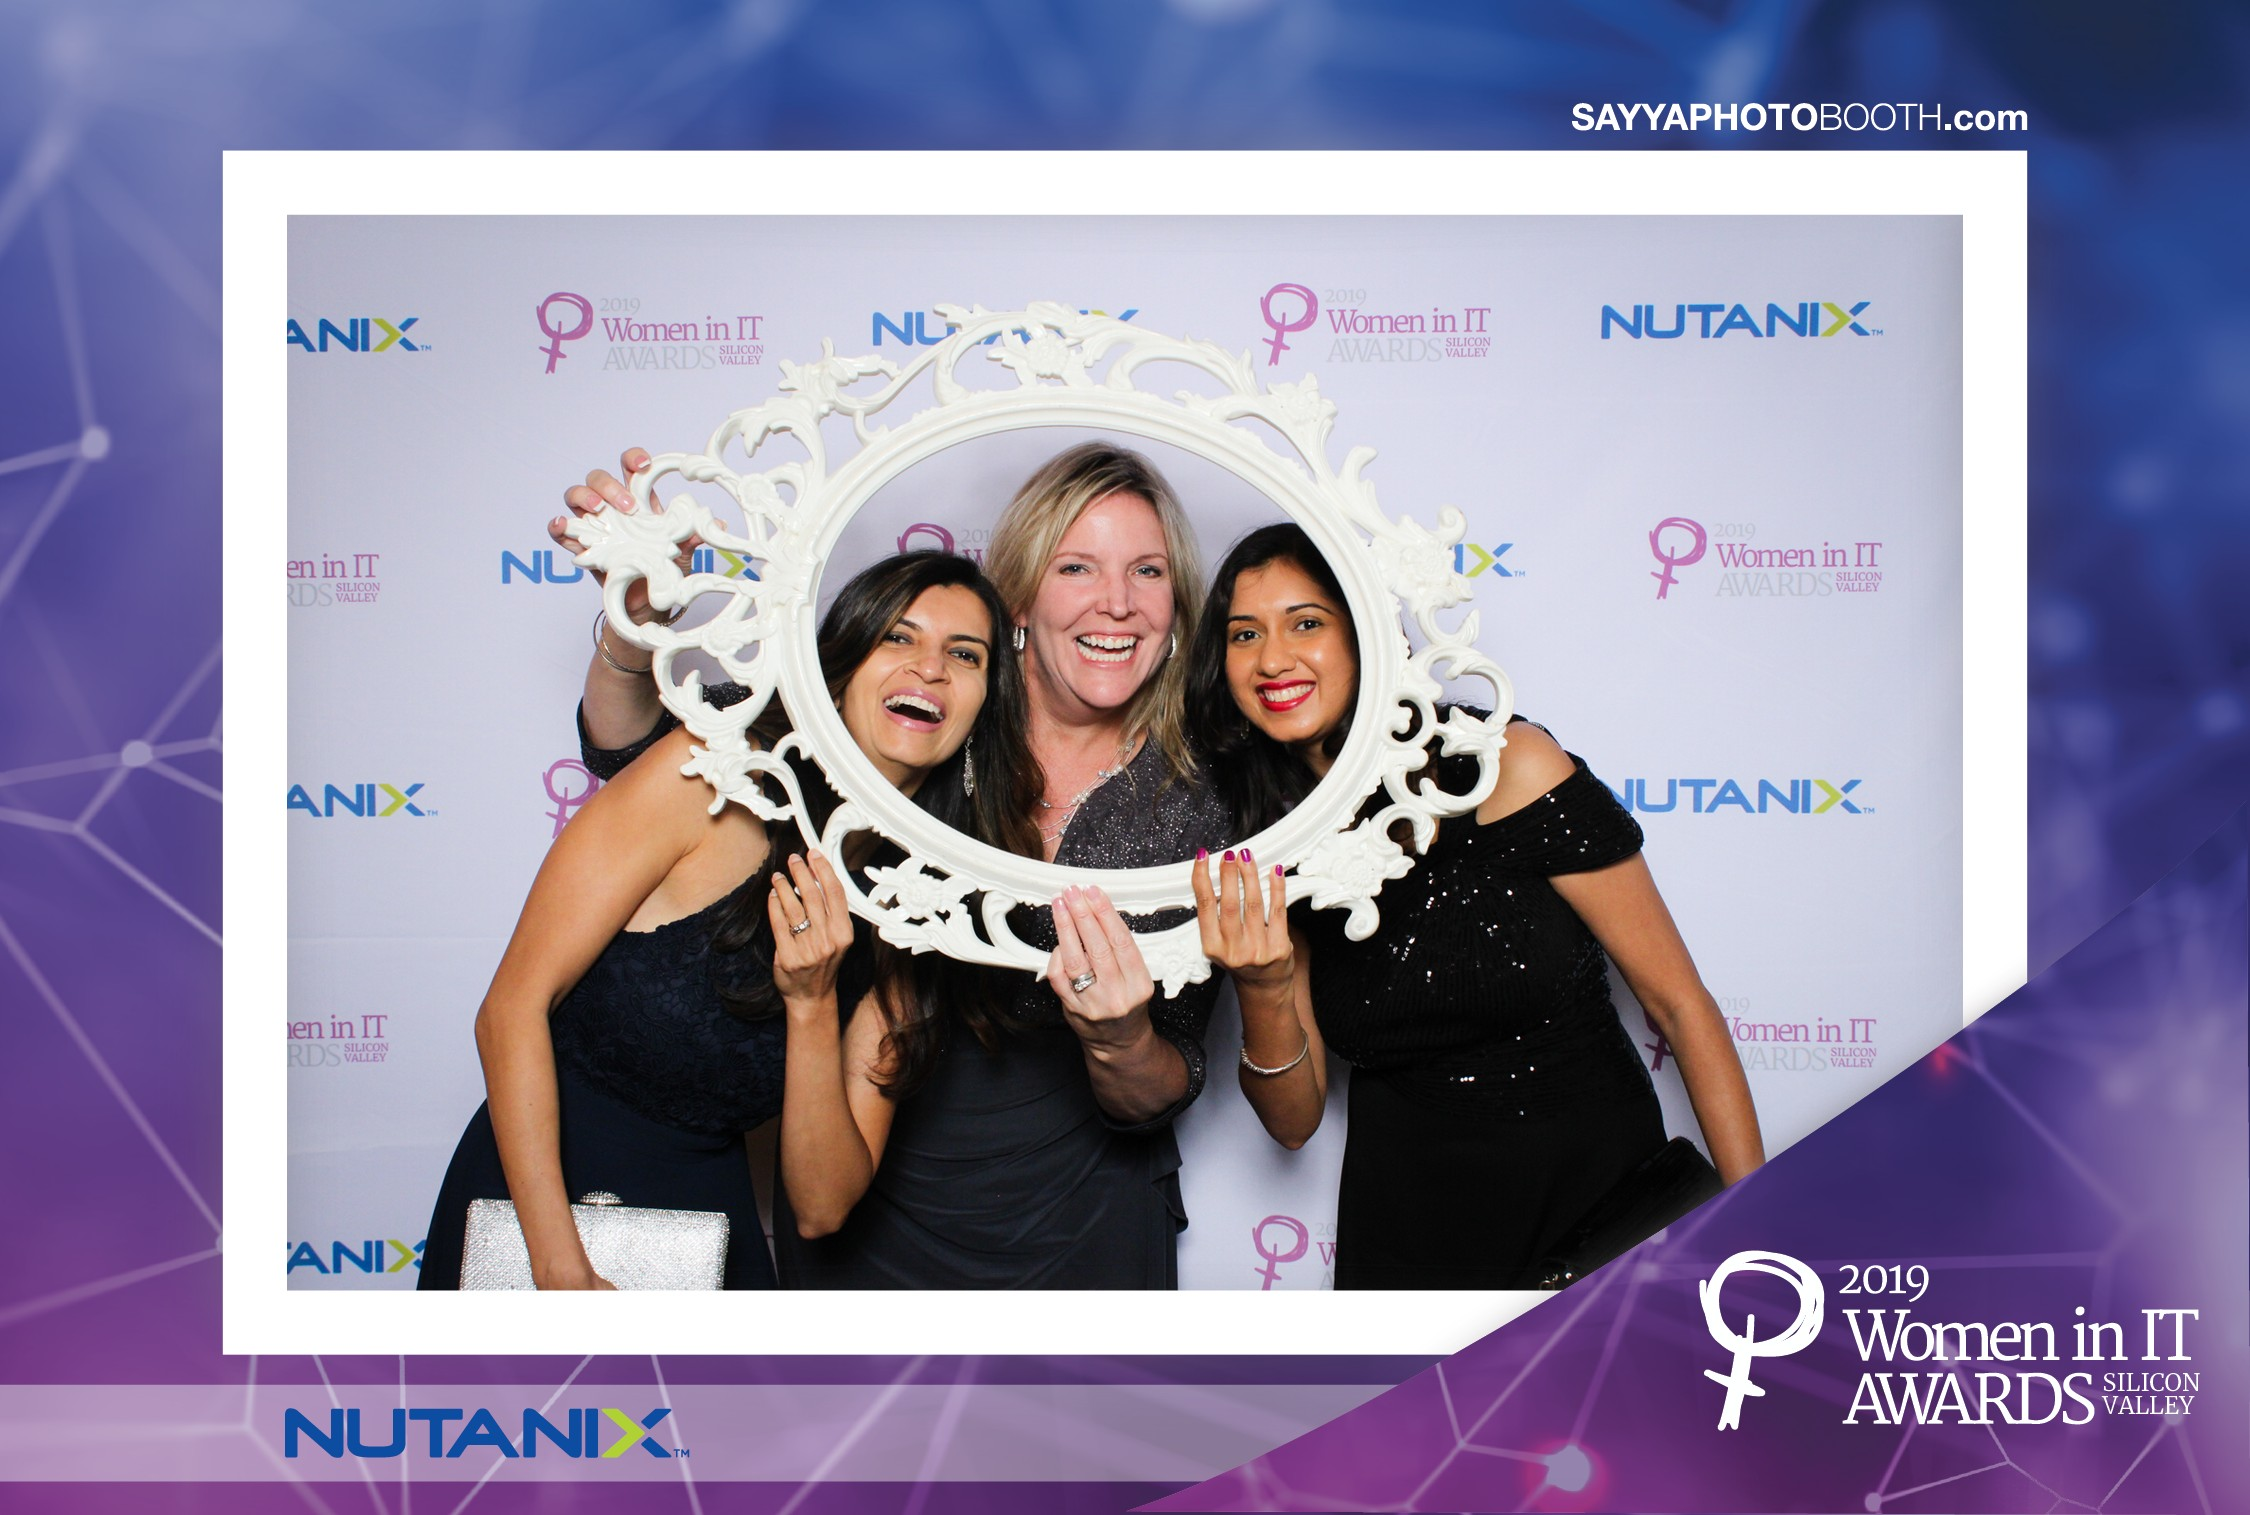 Women in IT Awards Silicon Valley